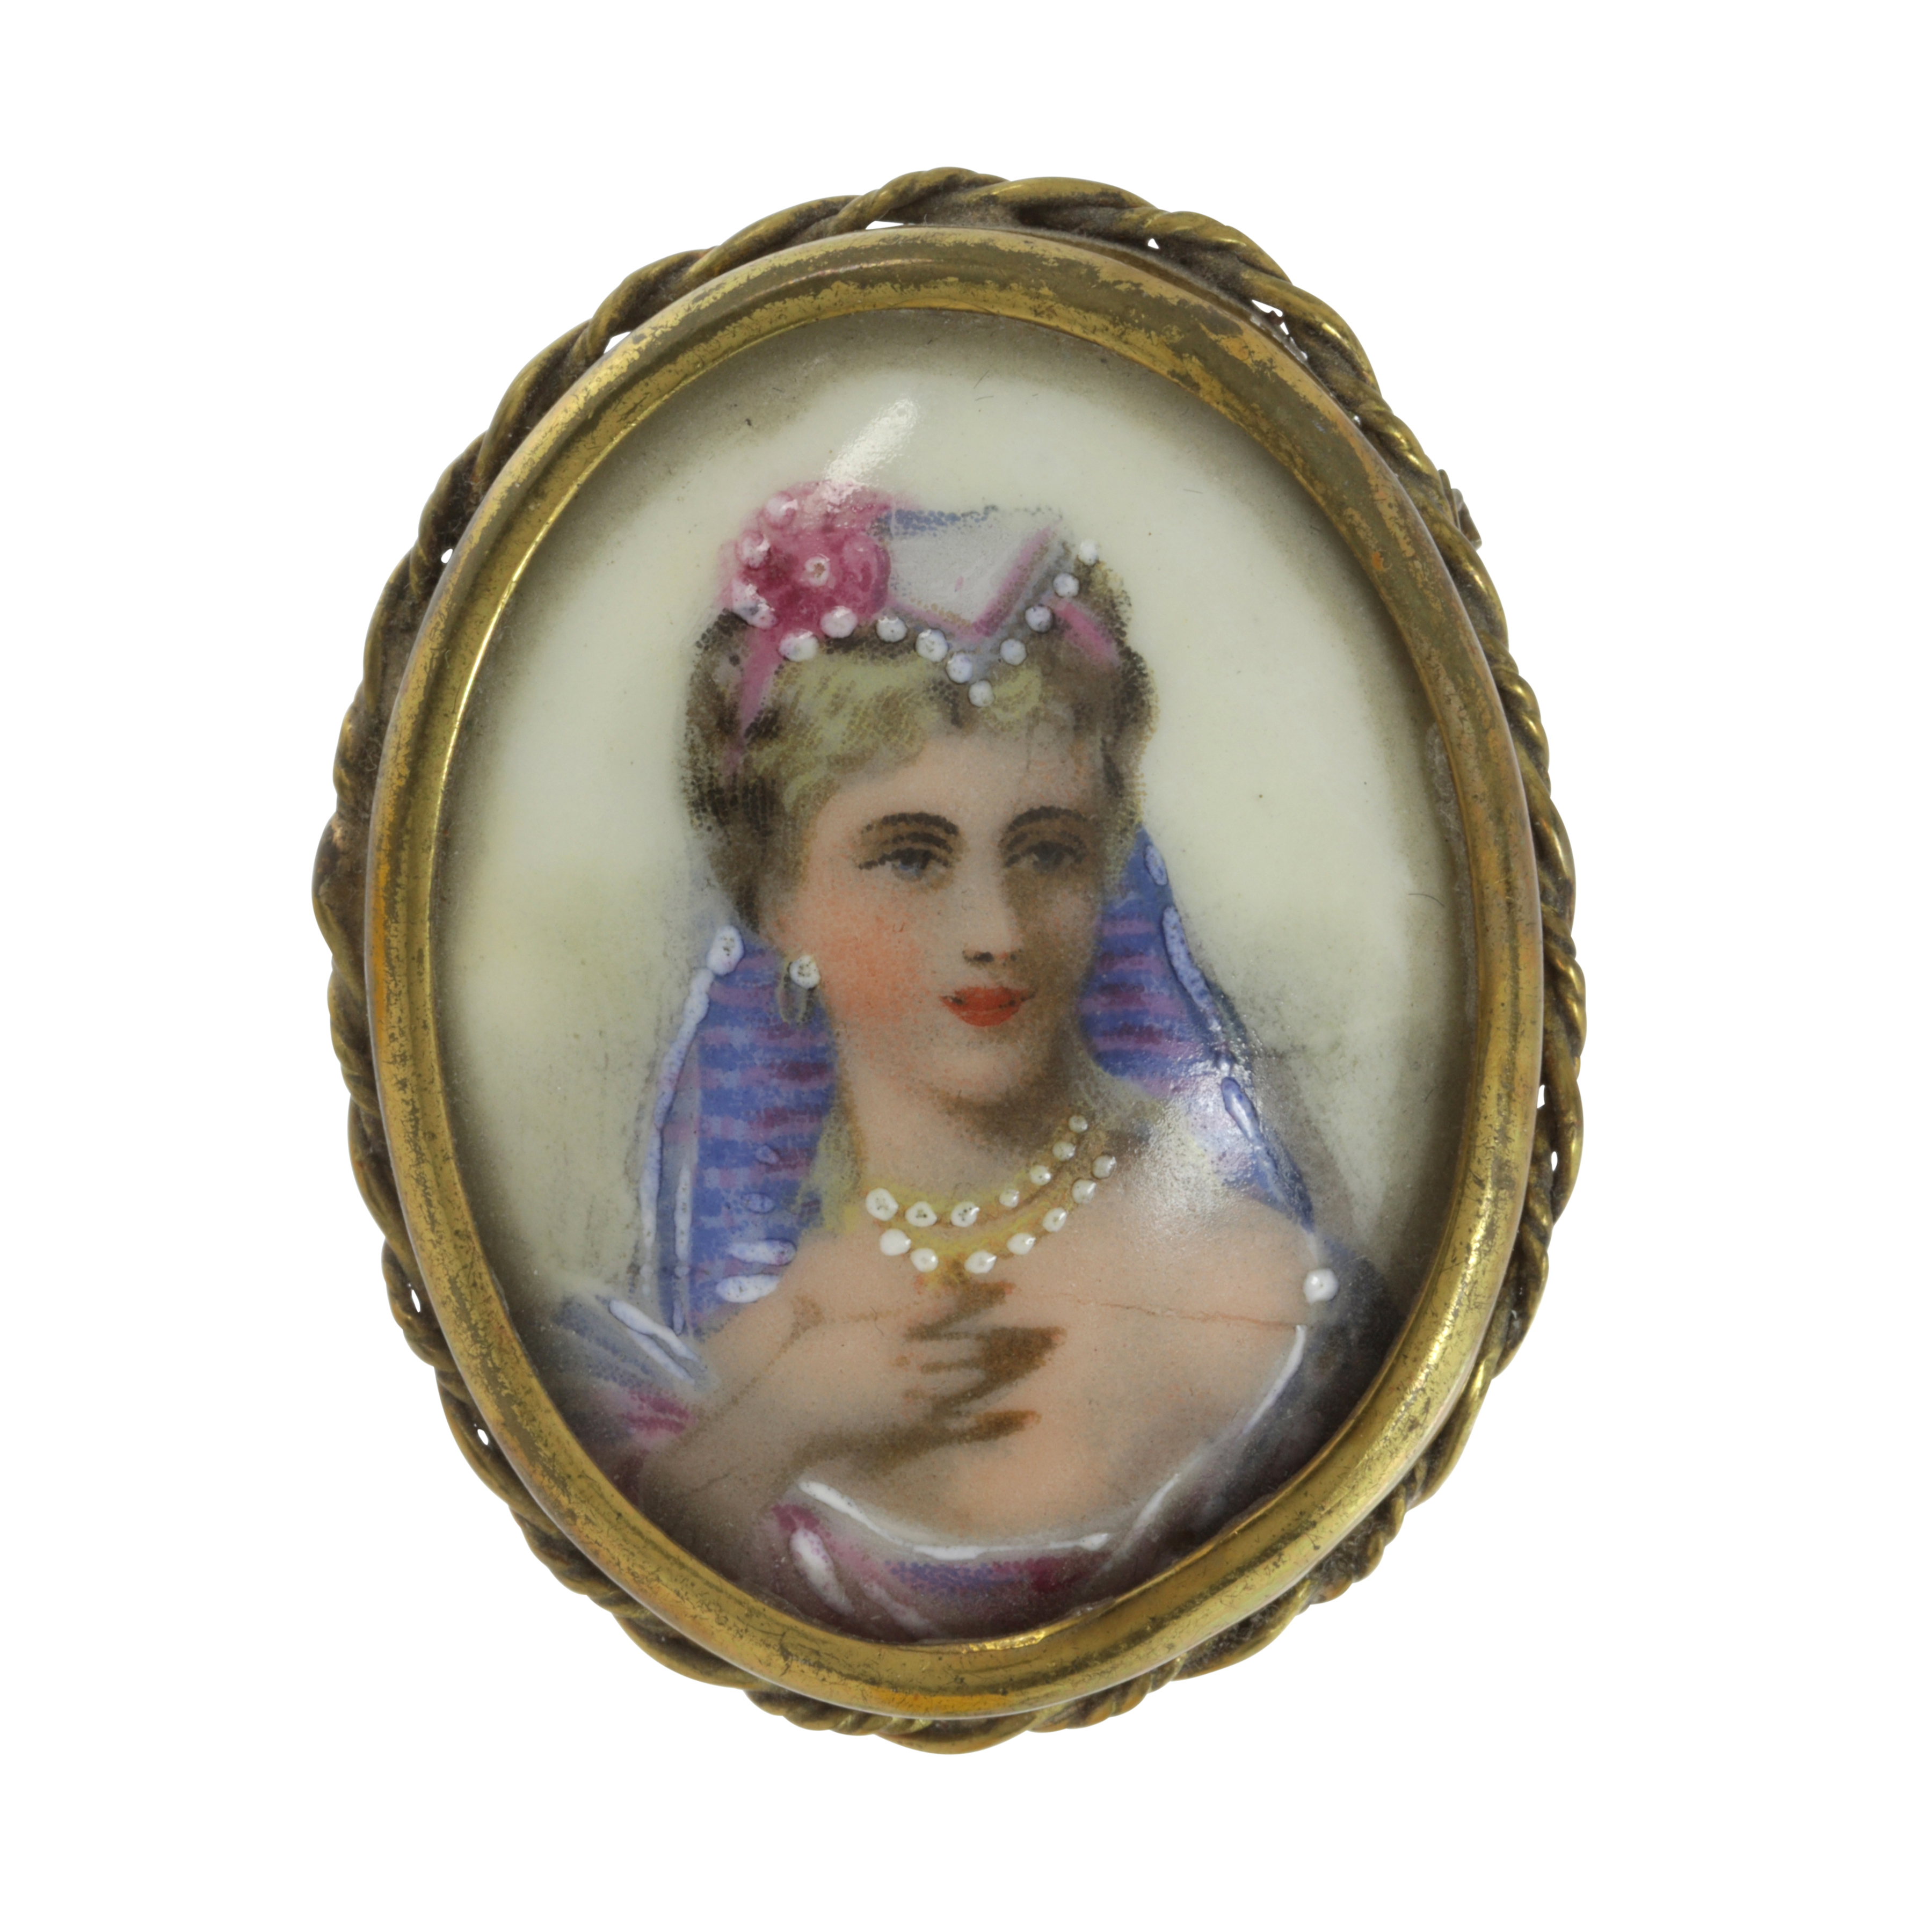 Los 458 - A LIMOGES PAINTED ENAMEL PORTRAIT MINIATURE BROOCH of oval form, painted to depict the bust of a